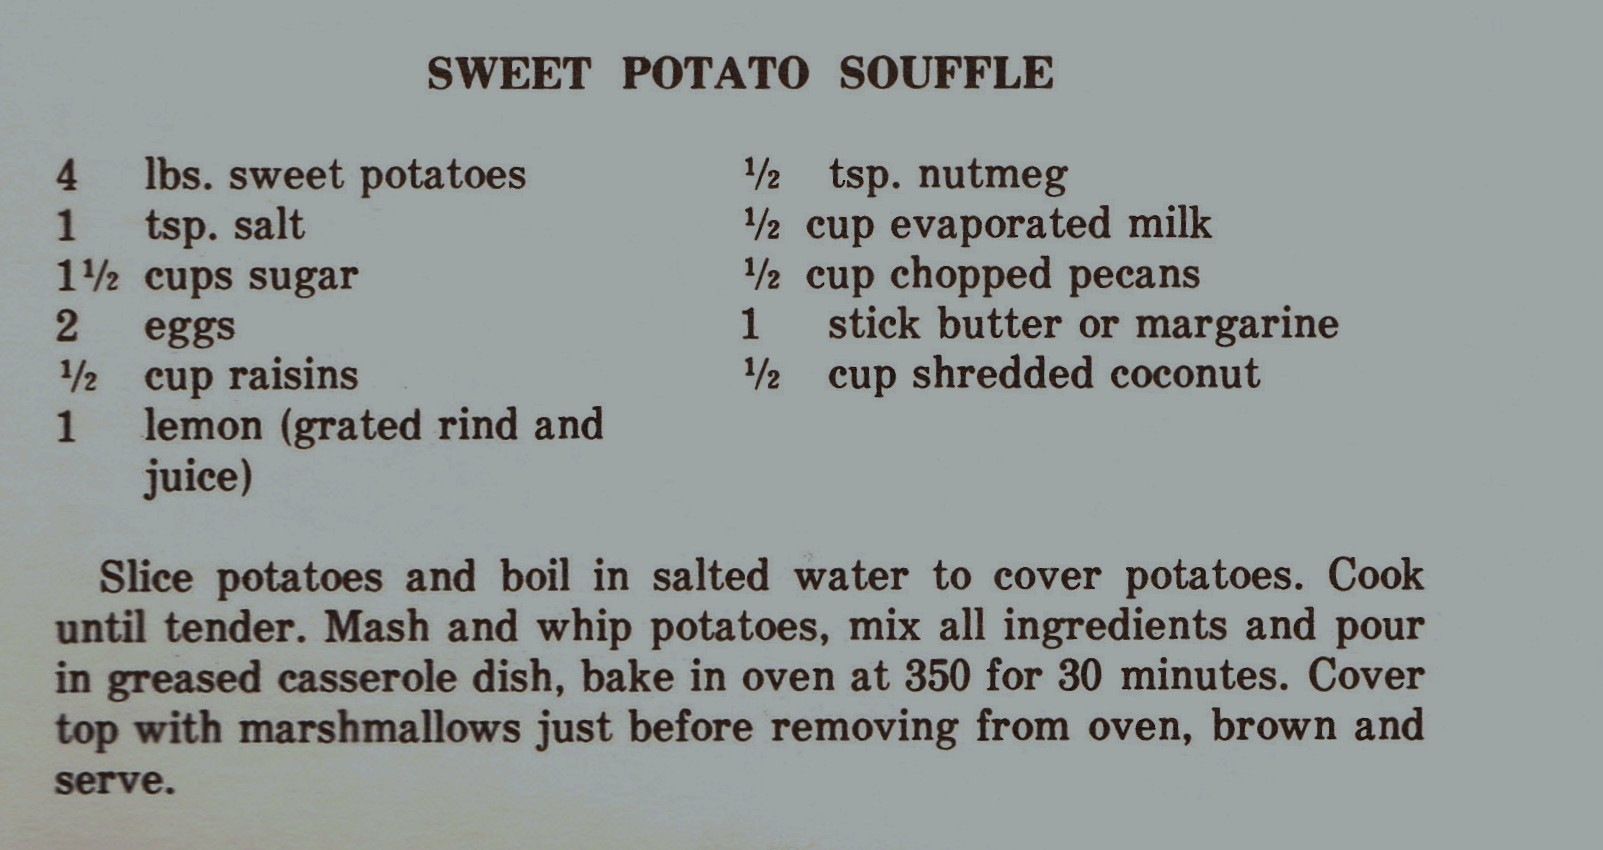 My Thanksgiving Menu And Mrs Wilkes Sweet Potato Souffle Or Pirate